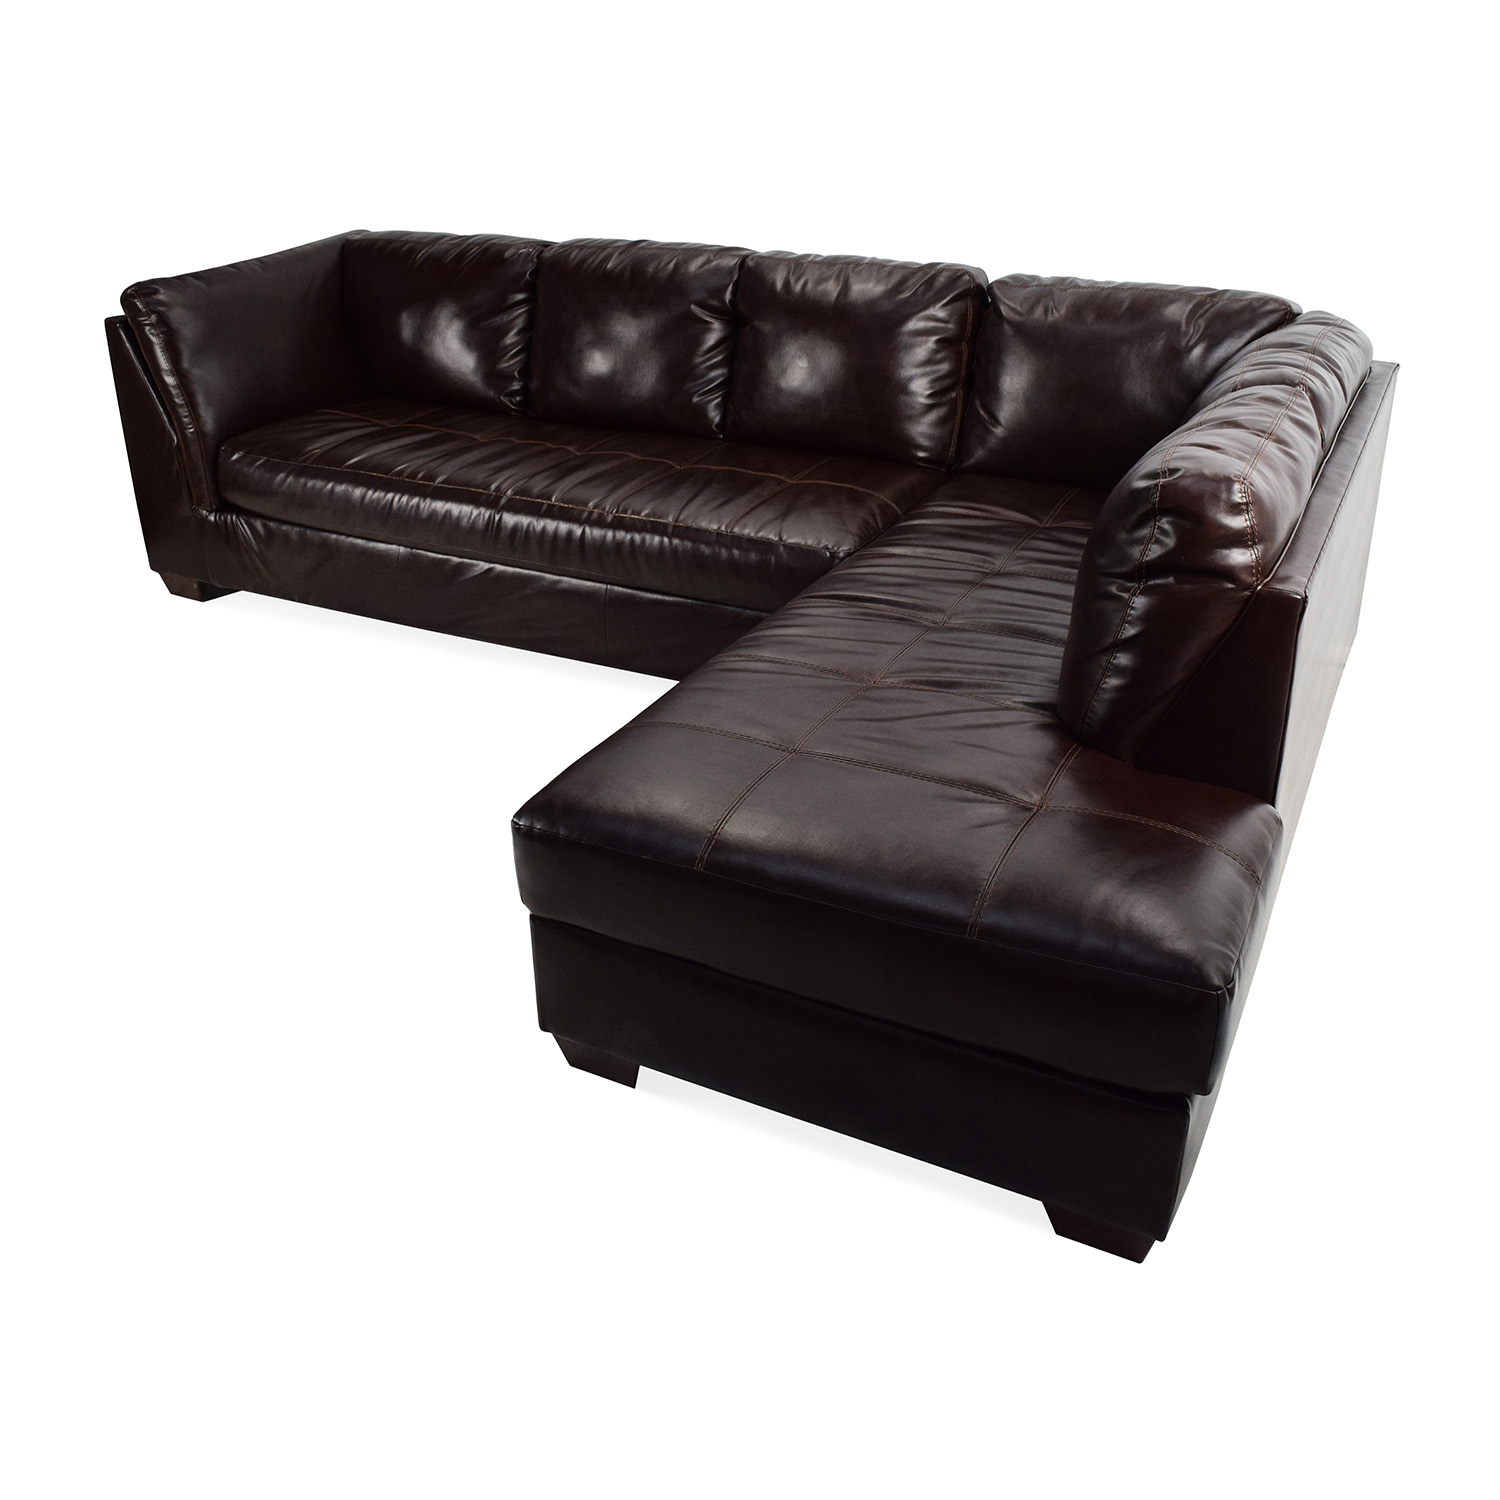 ... buy Jennifer Convertibles Jennifer Convertibles Brown Leather Sectional online ...  sc 1 st  Furnishare : jennifer leather sectional - Sectionals, Sofas & Couches